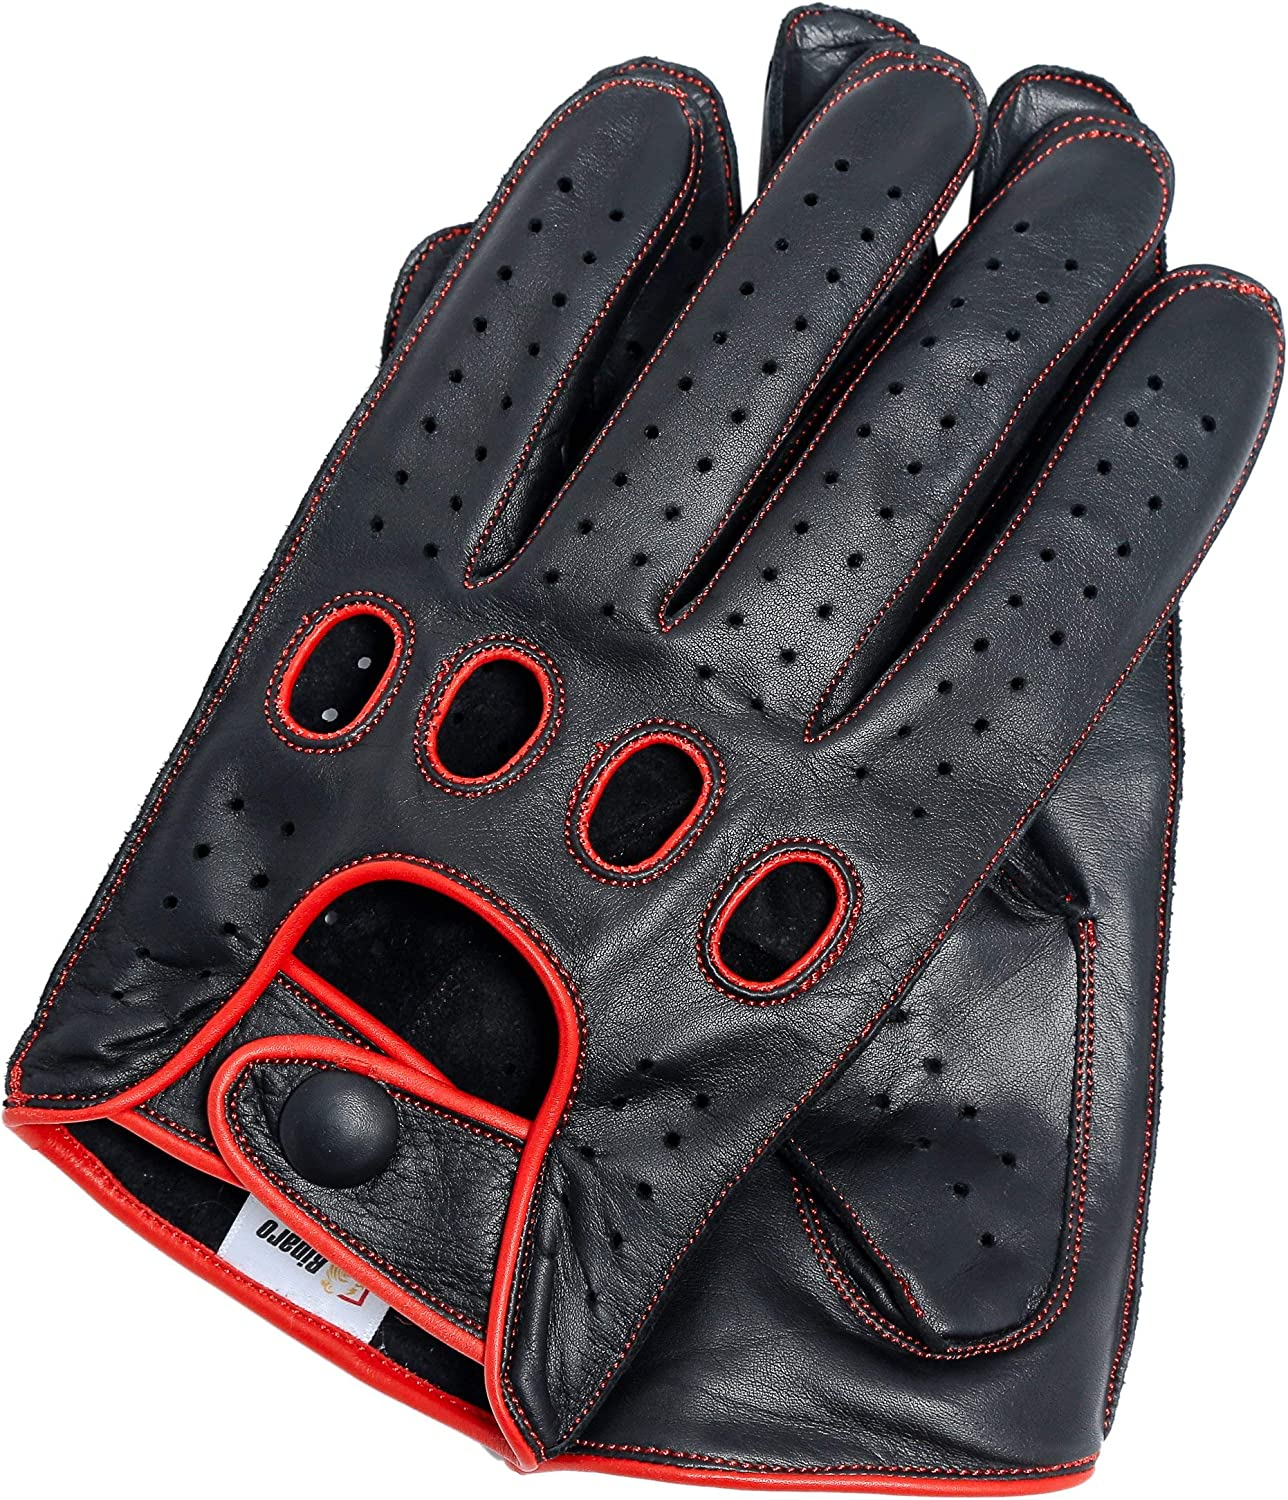 Riparo Women Genuine Leather Reverse Stitched Full-Finger Driving Motorcycle Gloves